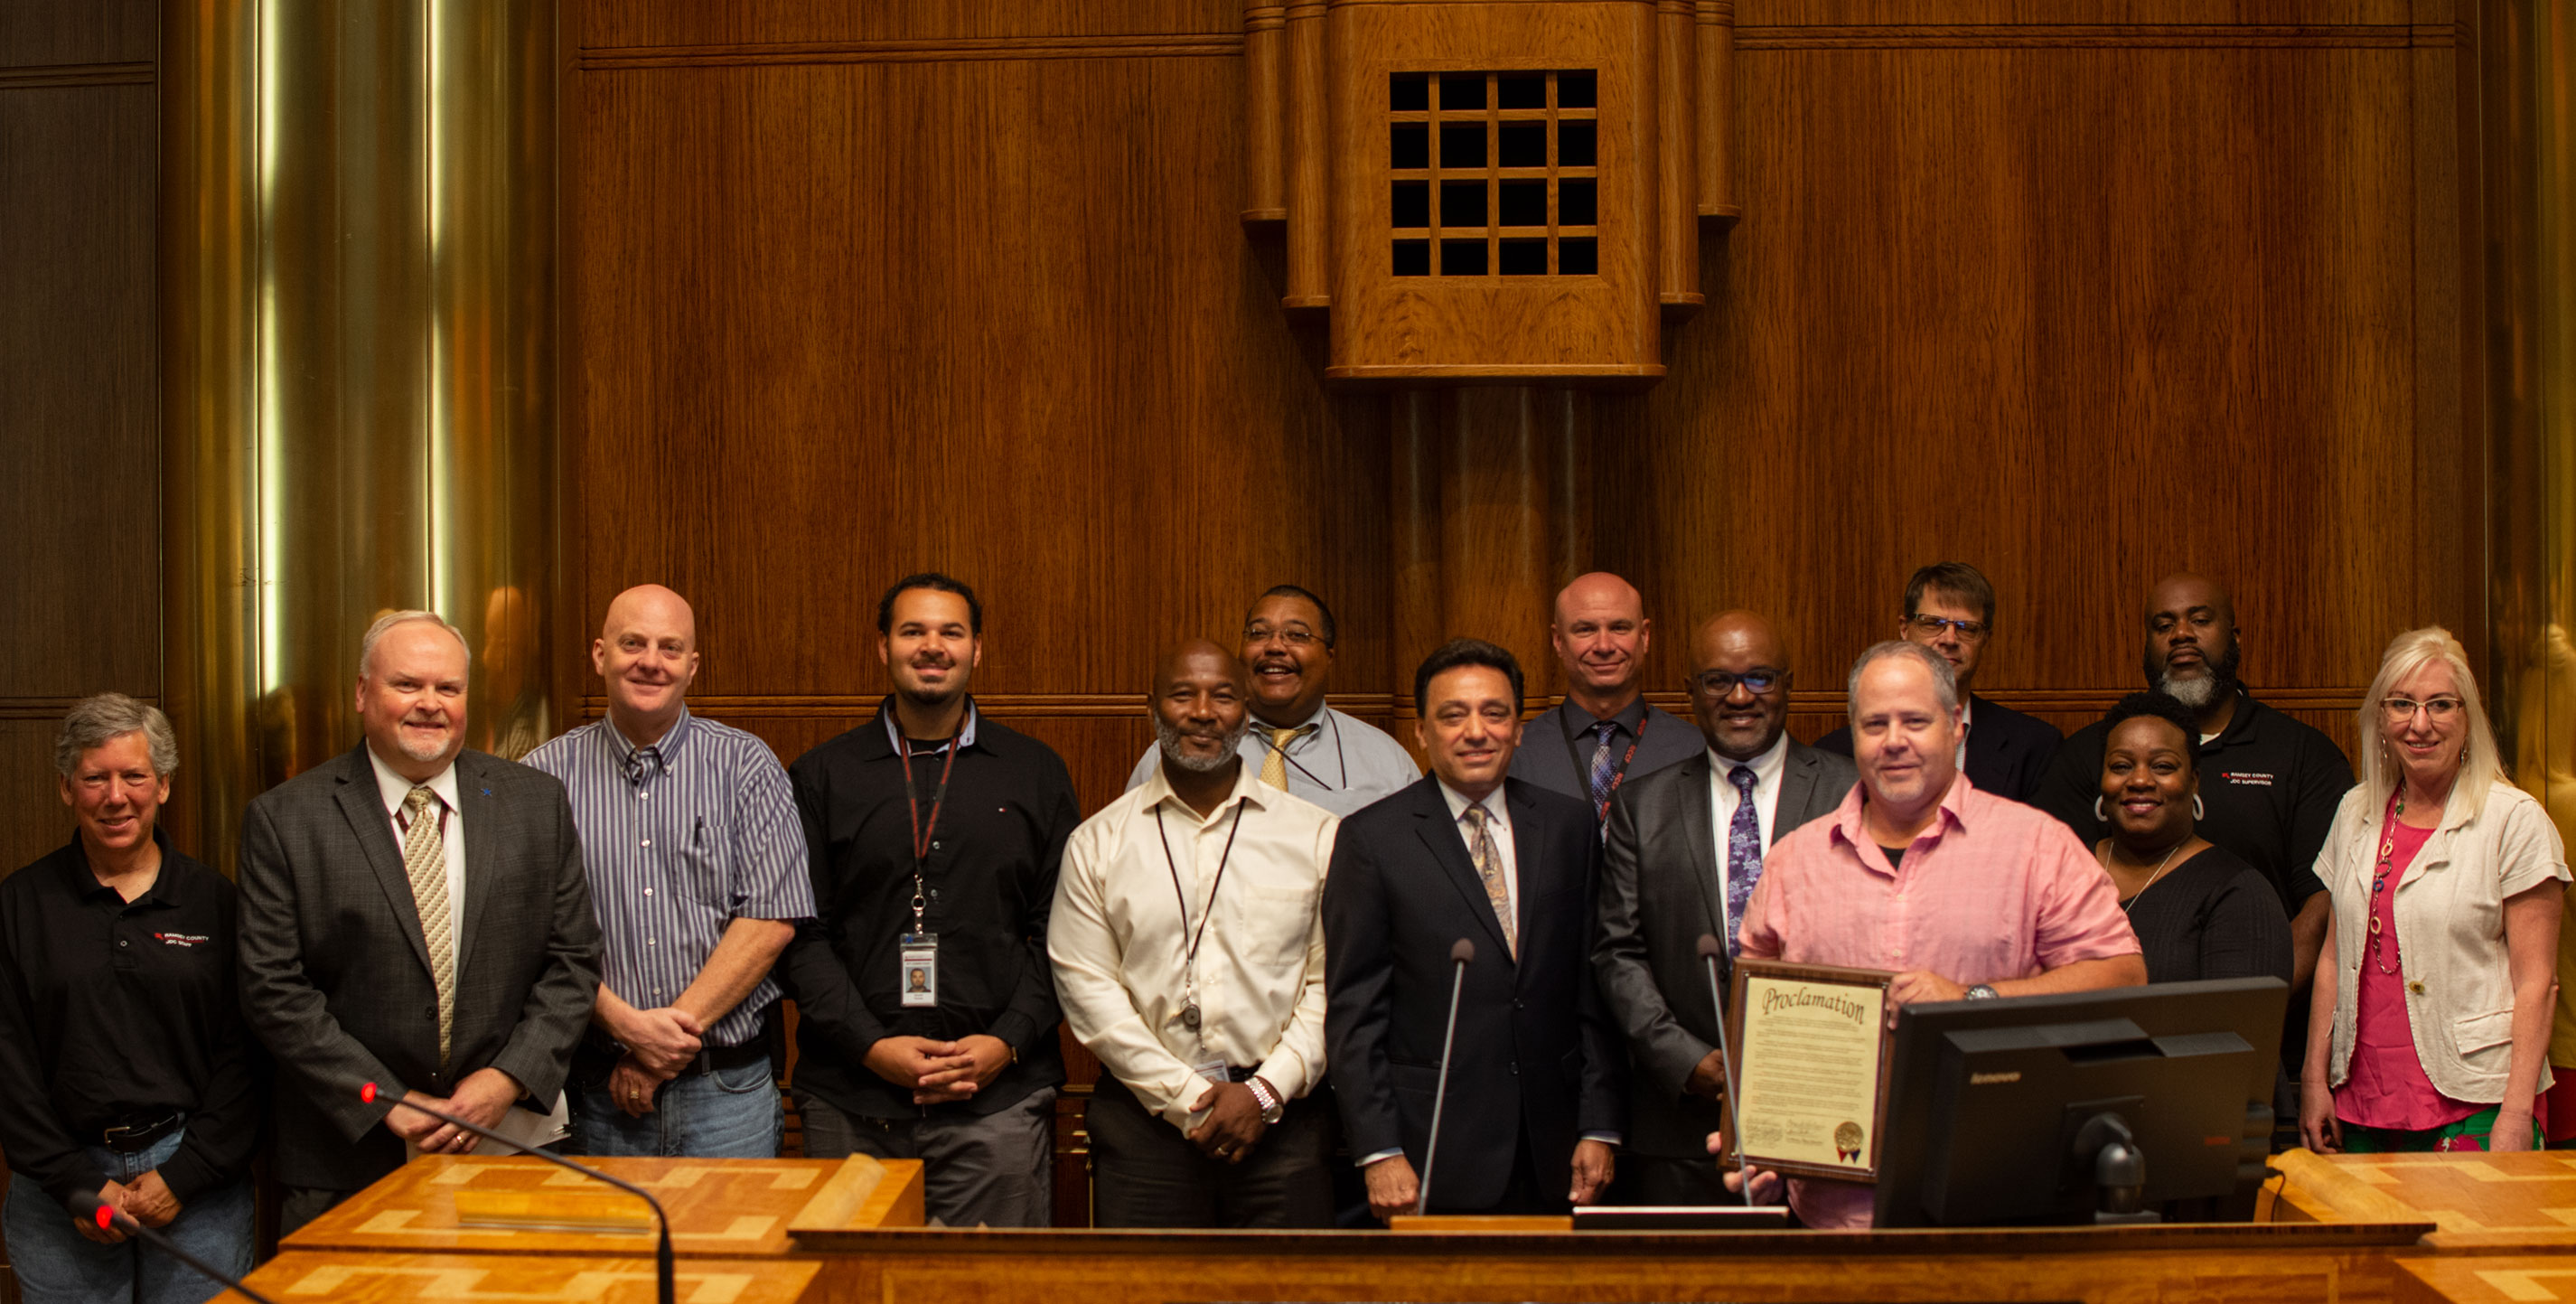 Staff at the pretrial, probation and parole proclamation ceremony